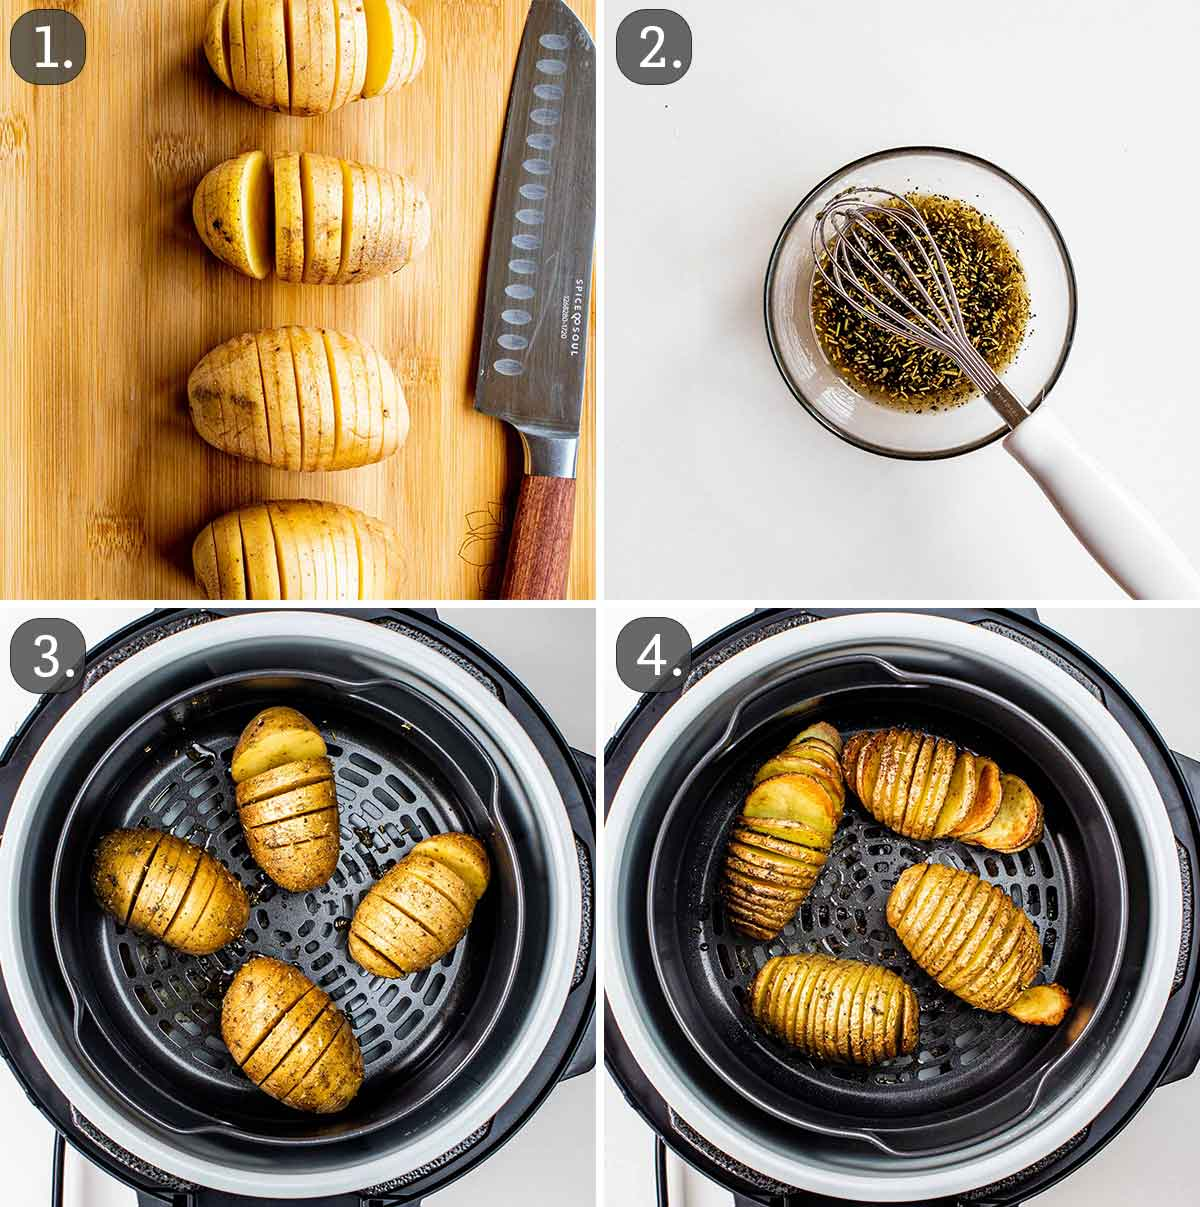 process shots showing how to make hasselback potatoes in the air fryer.